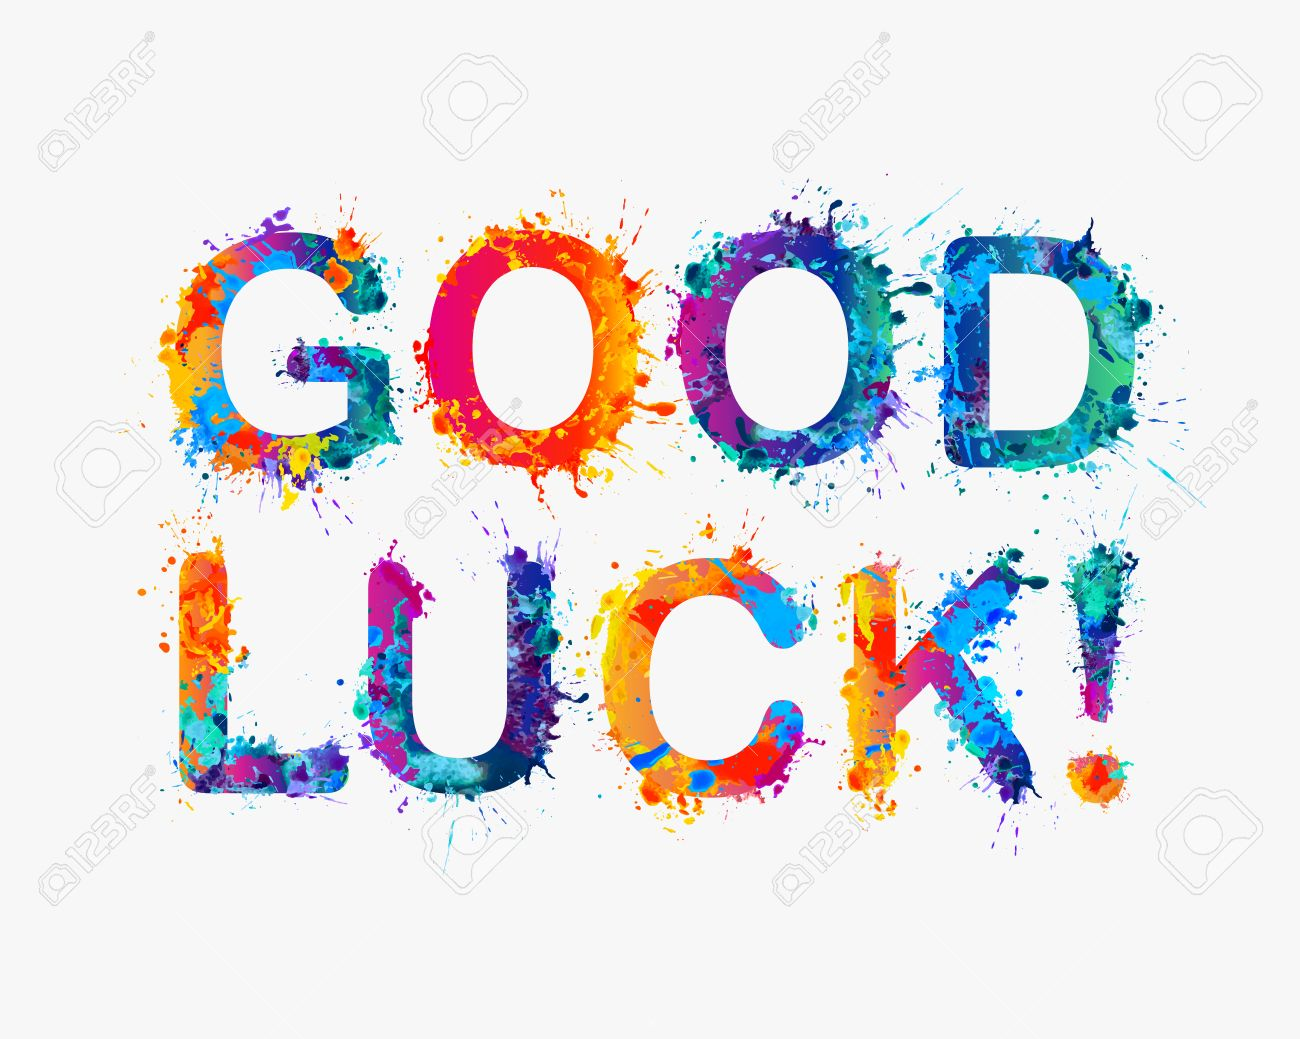 Awesome Good Luck Images Part - 14: GOOD LUCK! Motivation Inscription Of Splash Paint Letters Stock Vector -  51654578